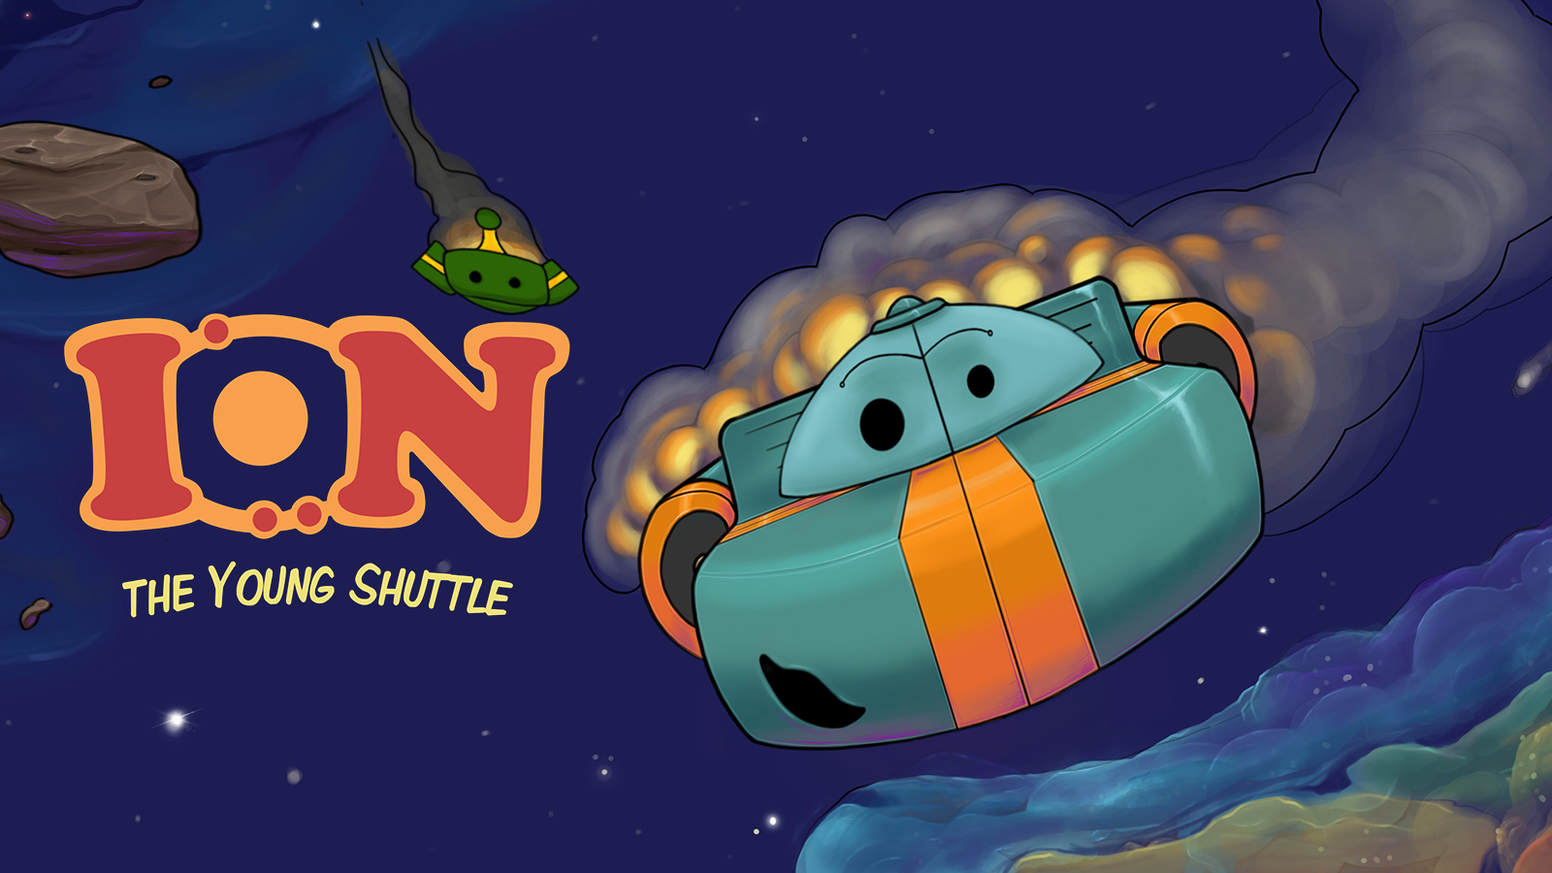 A children's picture book about learning, exploring, and having fun in outer space!